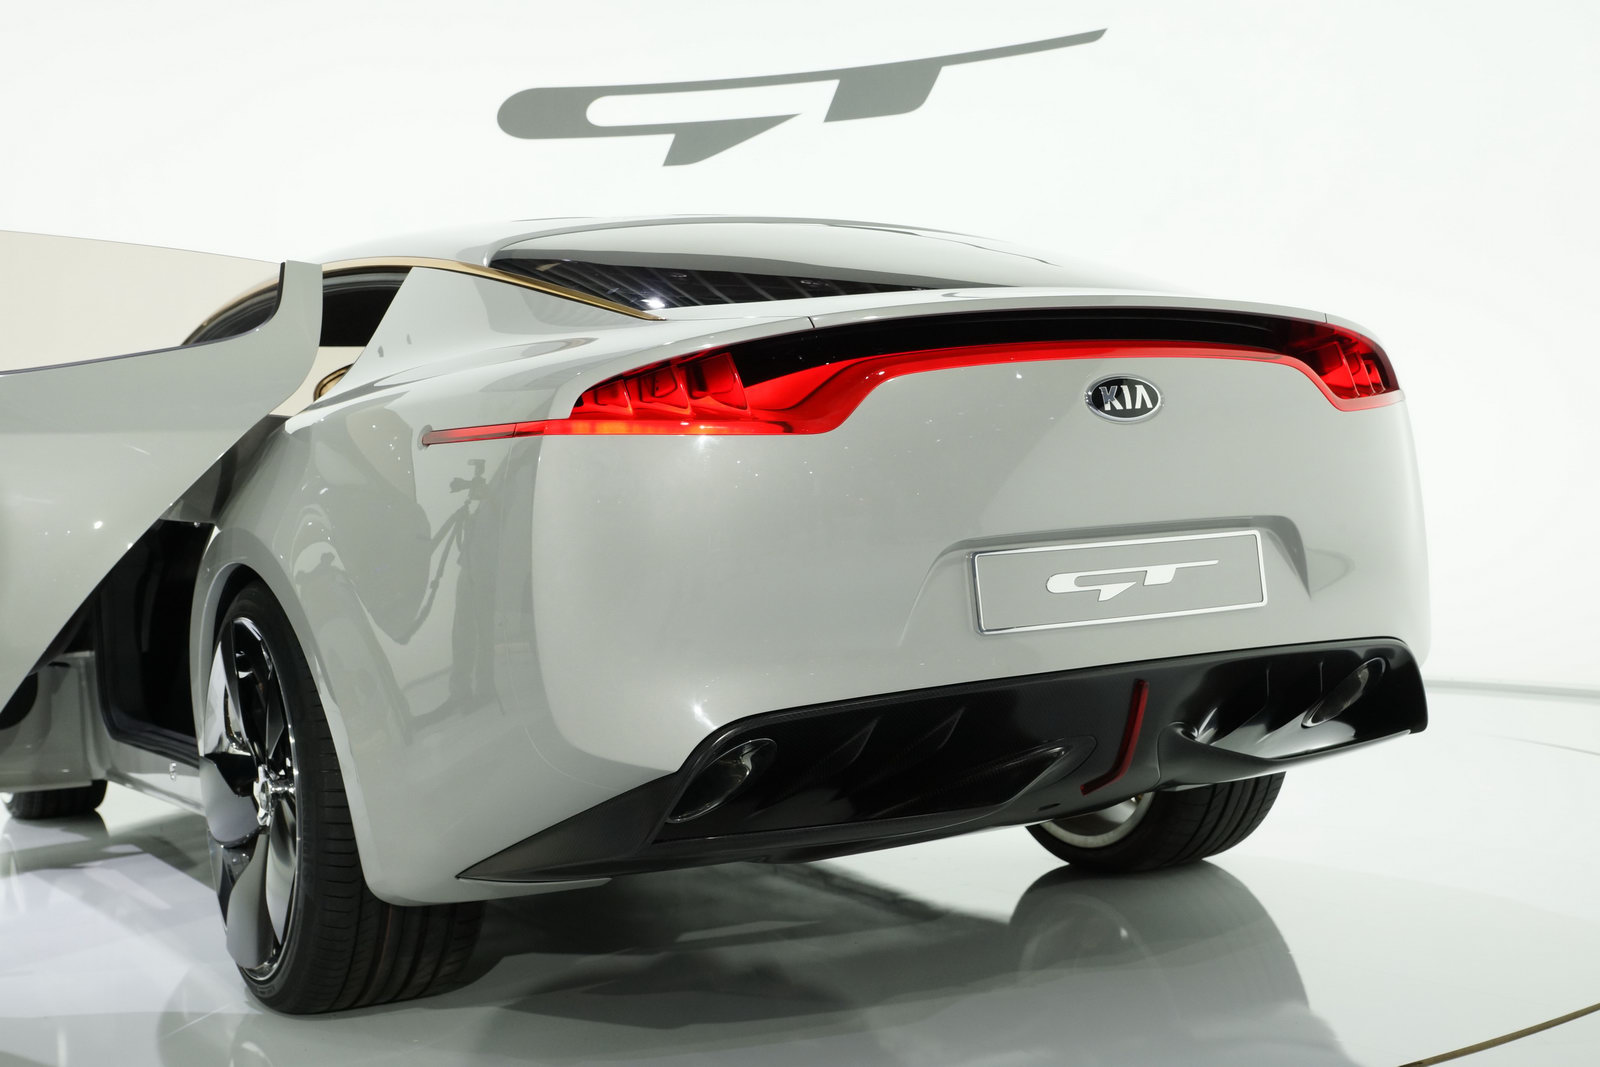 2011 KIA RWD GT Concept 5 2011 Concept of Kia Becomes Production?